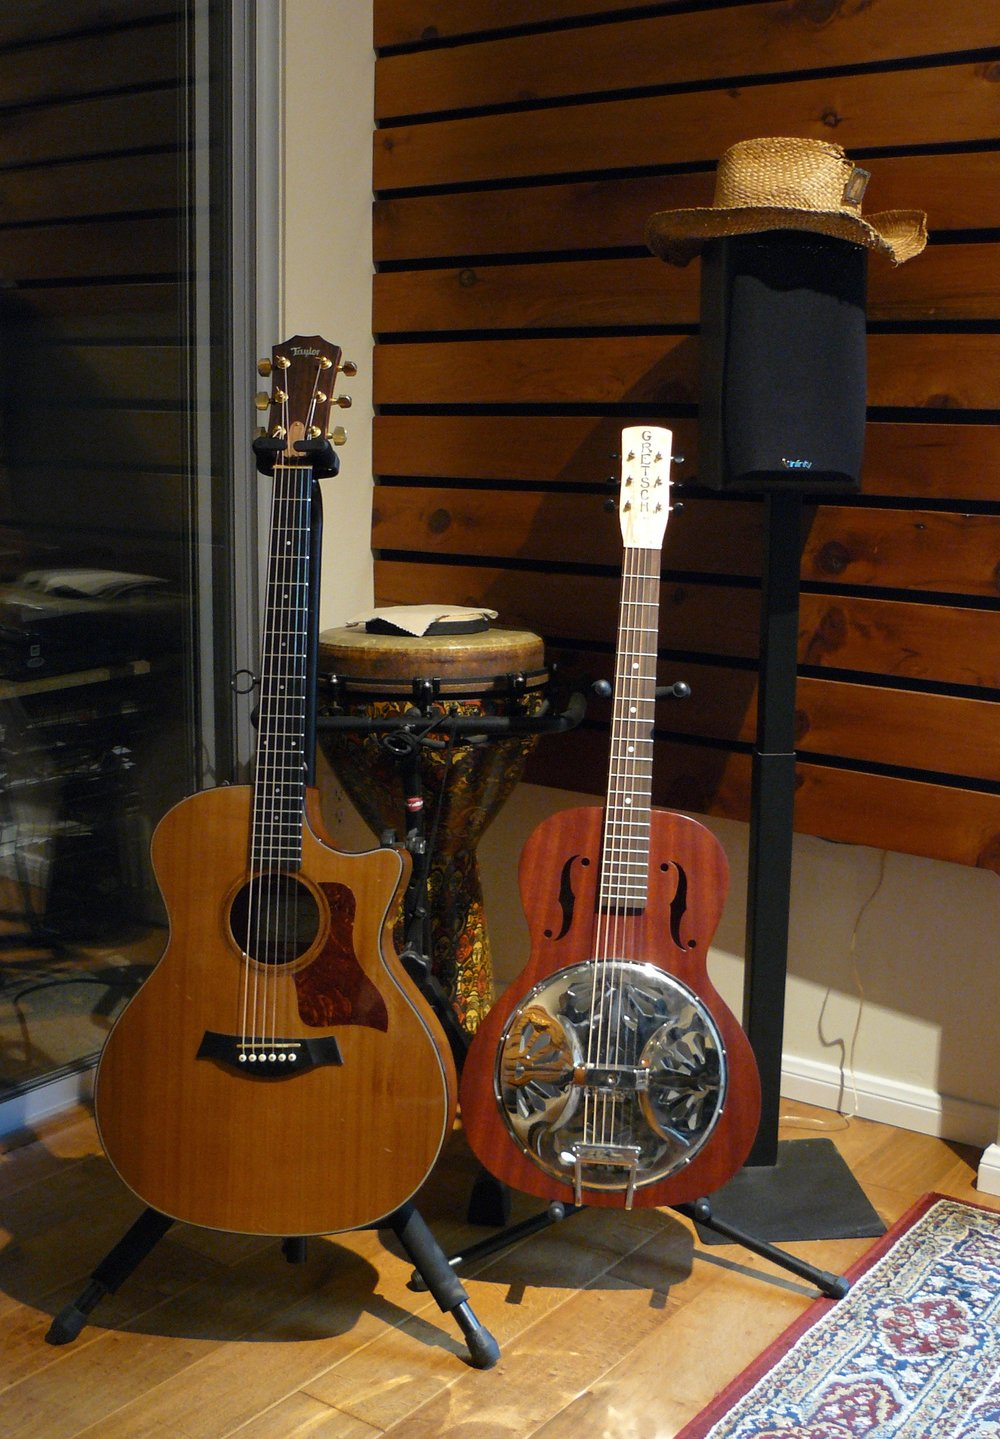 We Love Guitars at Rancho Bohemia; 5.1 surround monitoring, too!